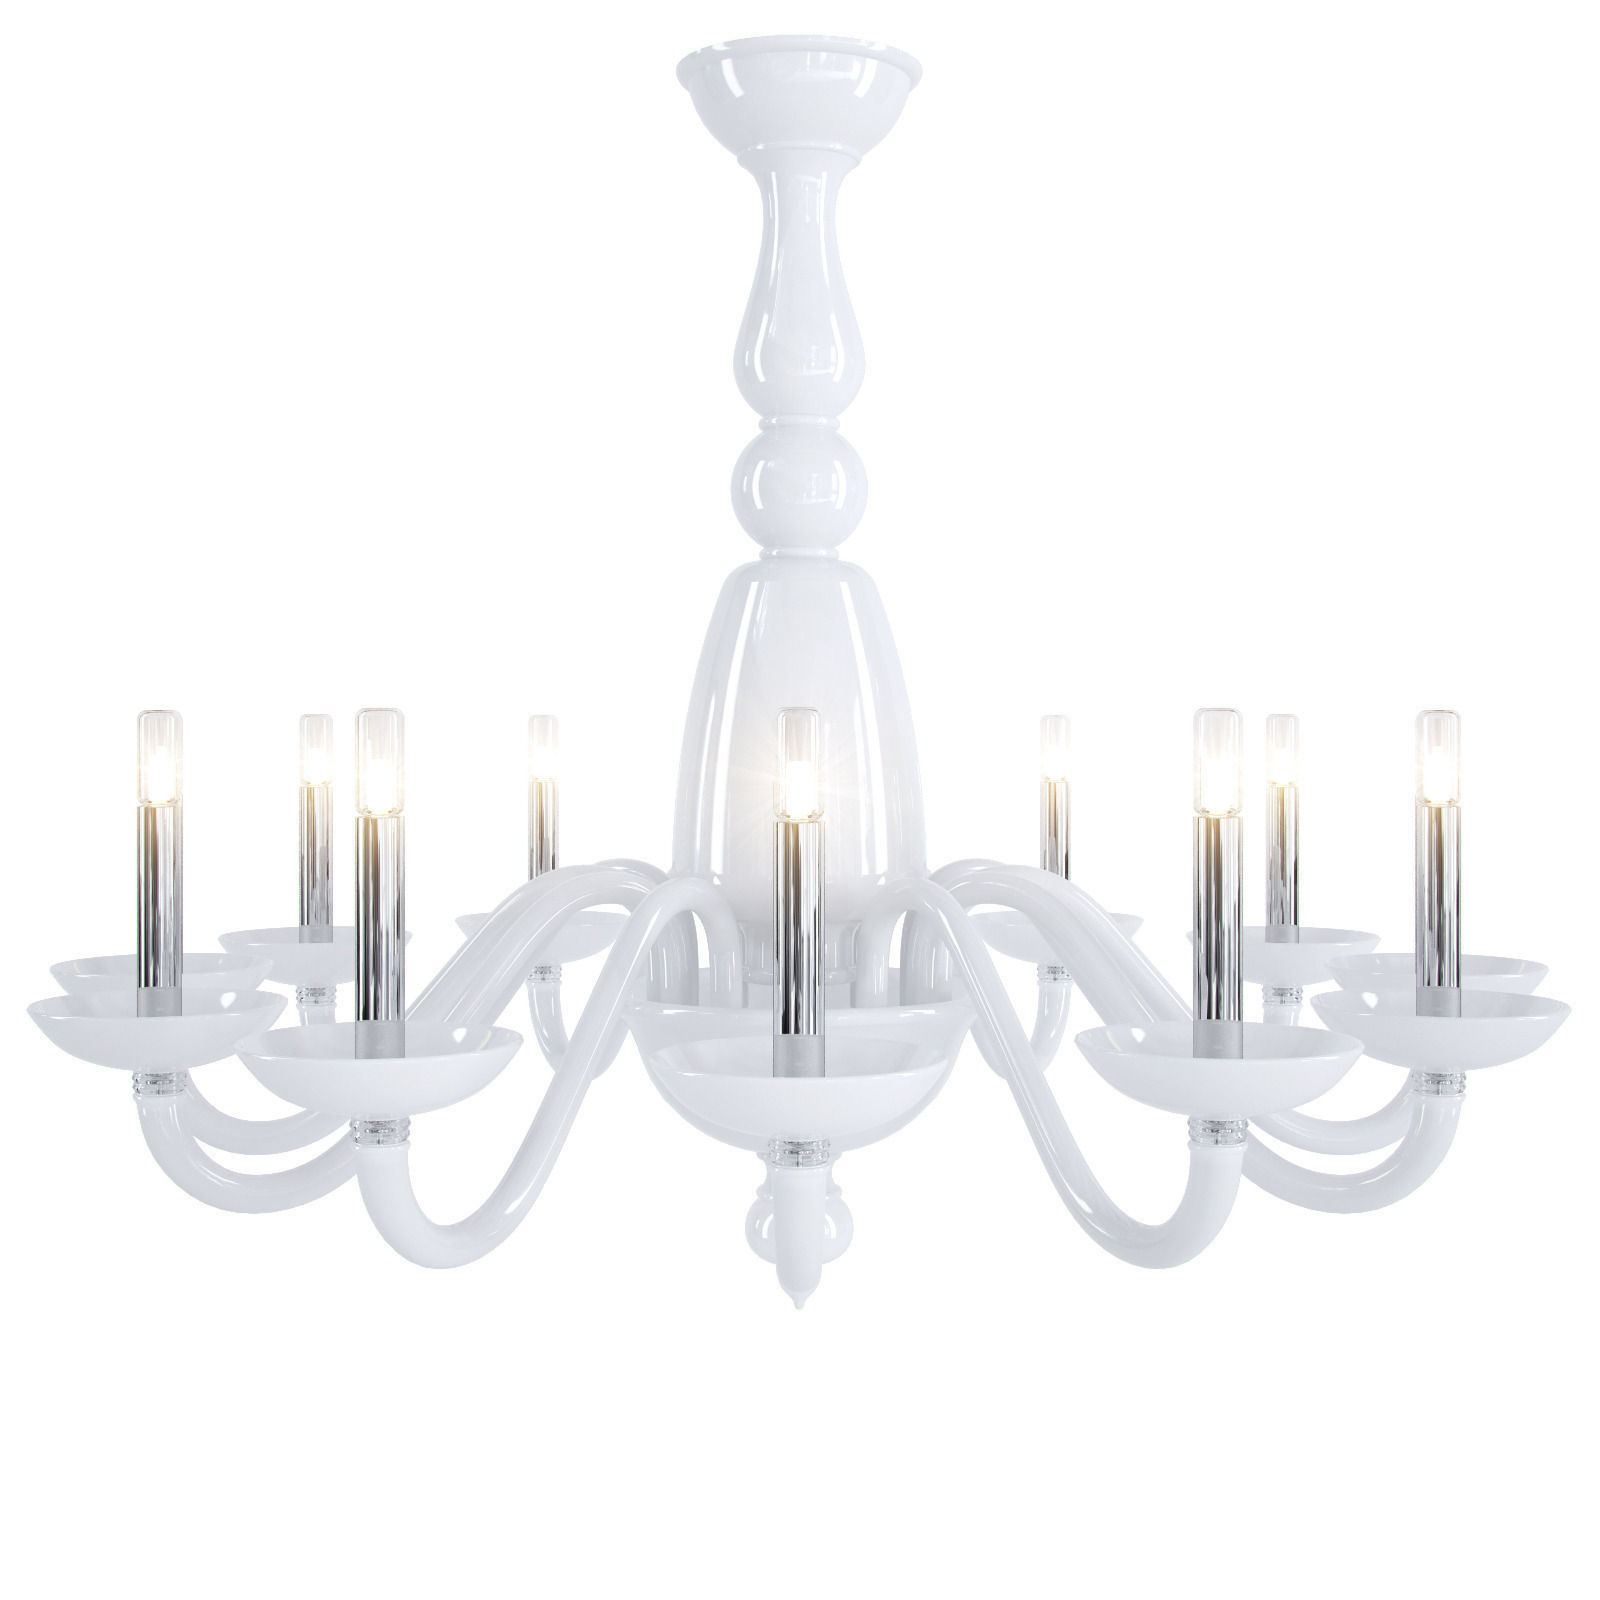 barovier toso palladiano chandelier 3d model max obj fbx. Black Bedroom Furniture Sets. Home Design Ideas